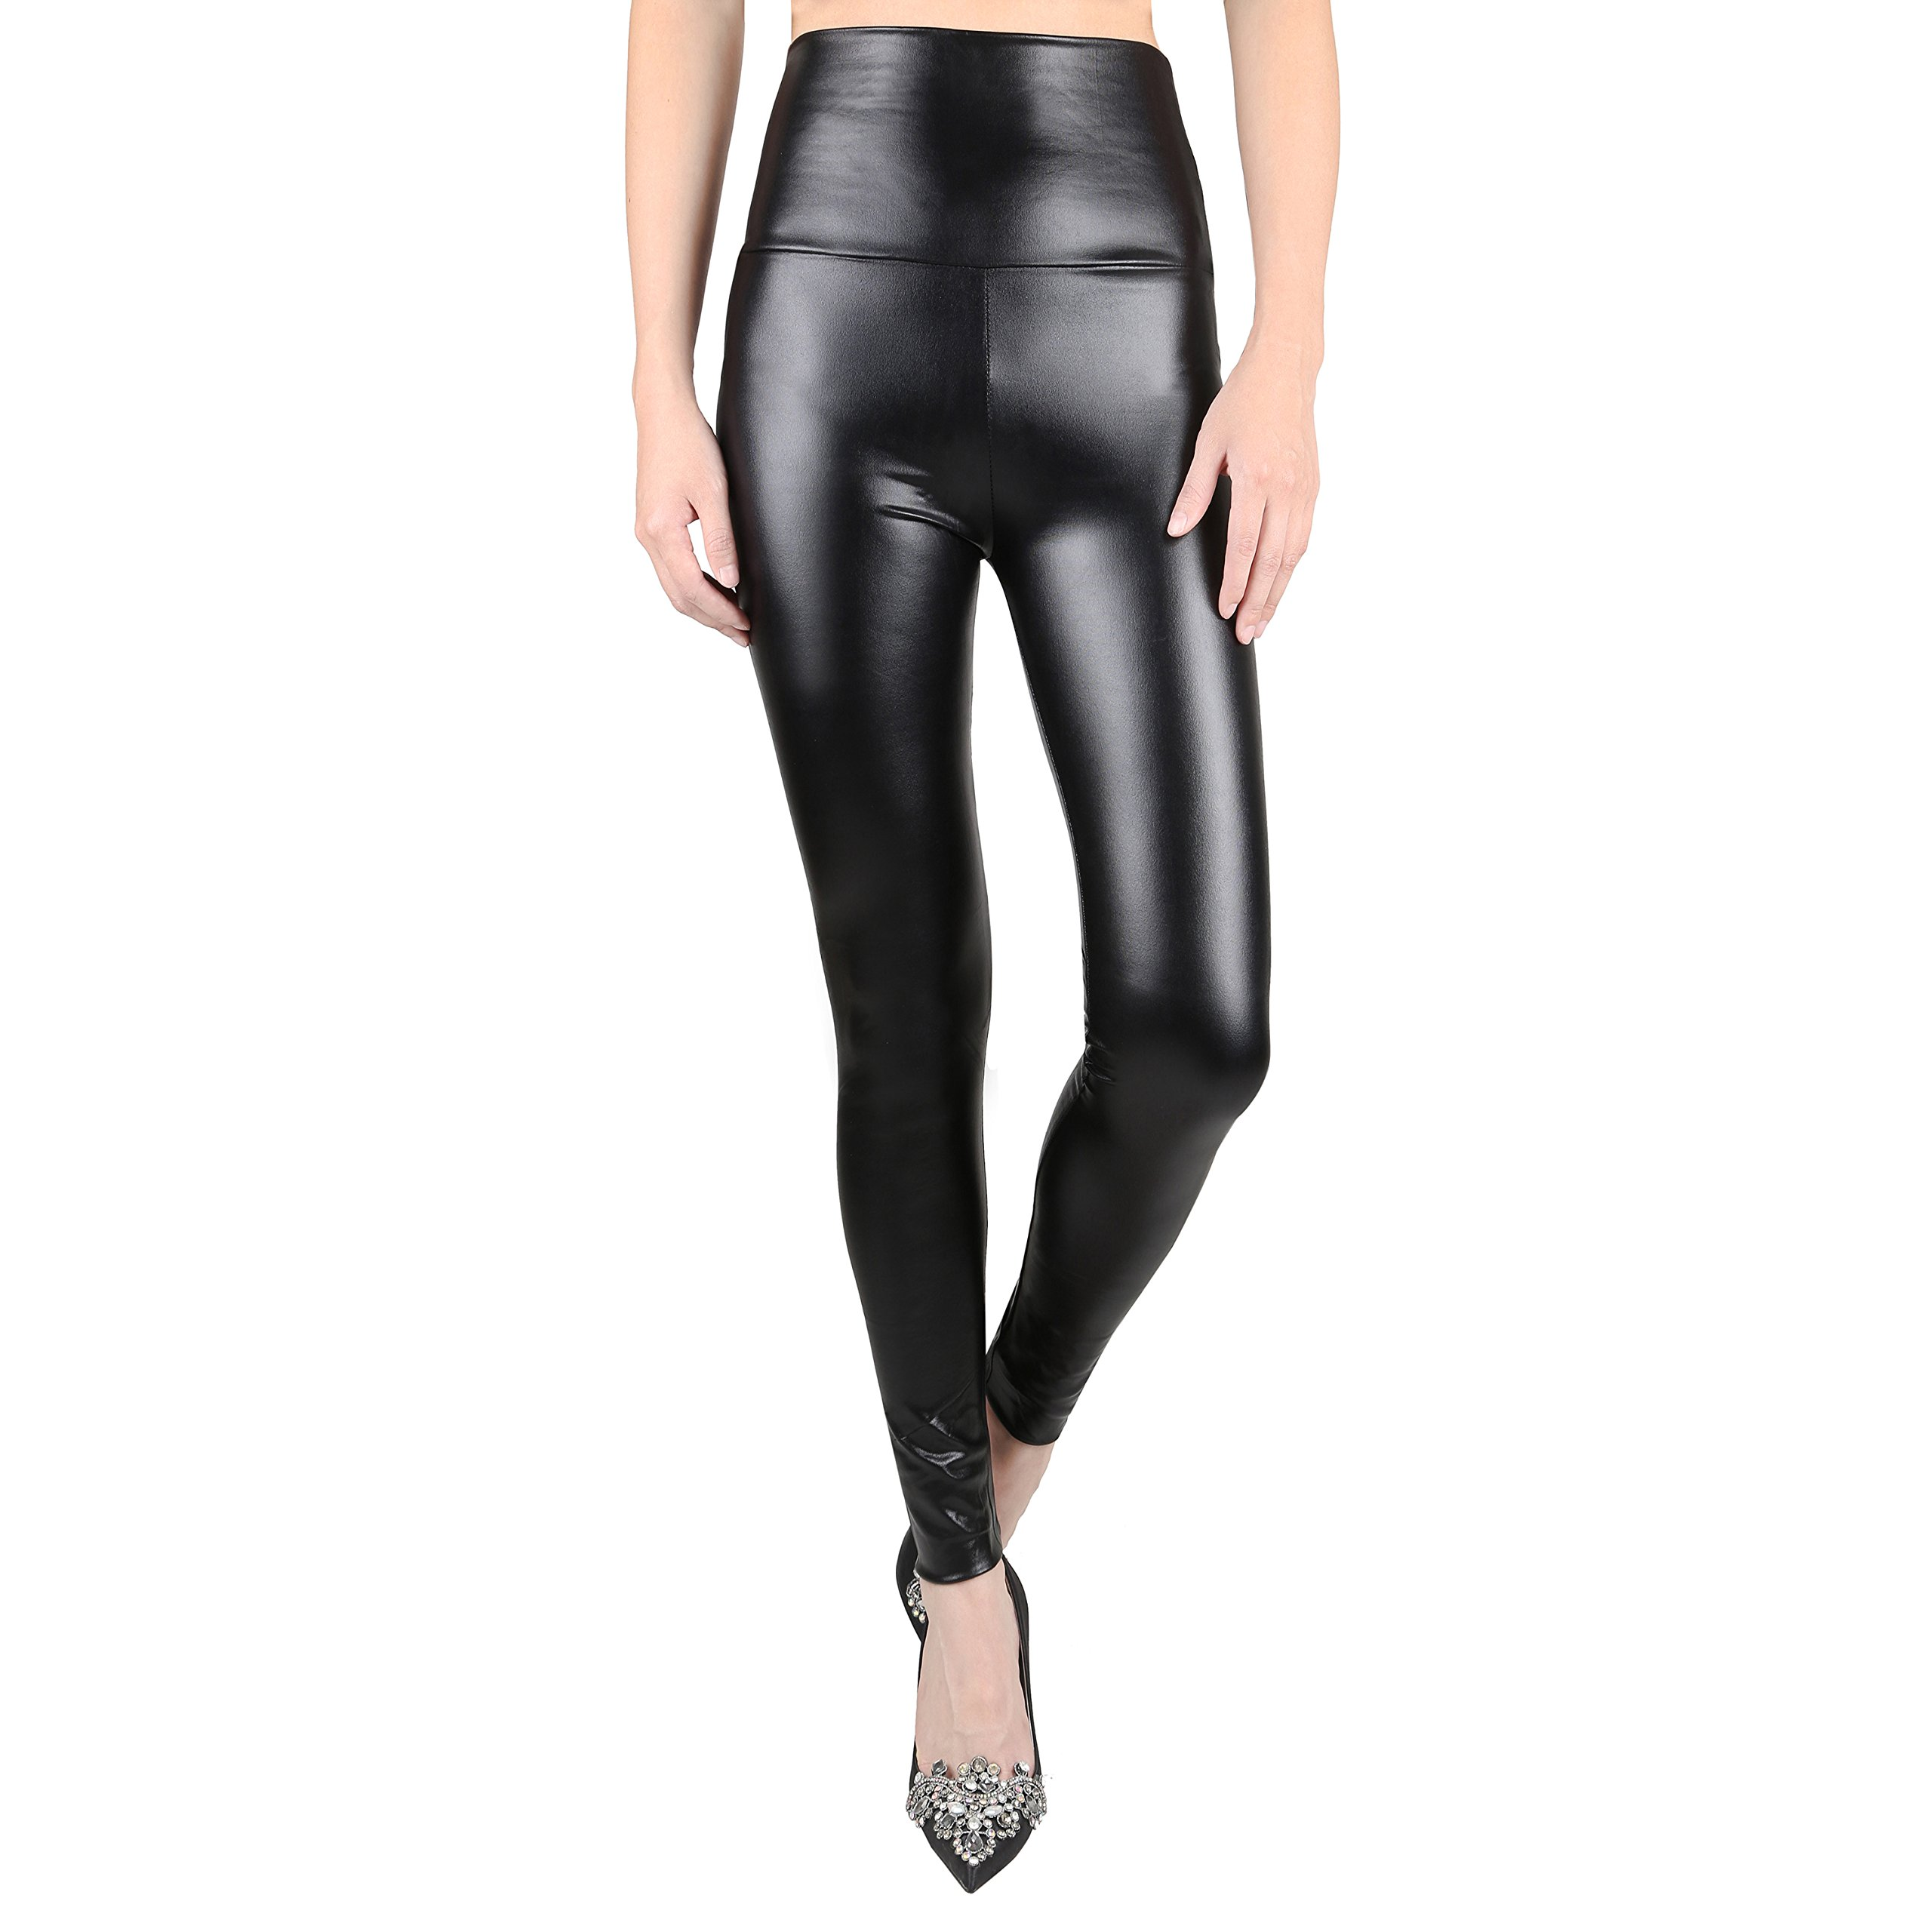 Sexy Faux Leather High Waisted Leggings (L  (US 12-14), shiny black)